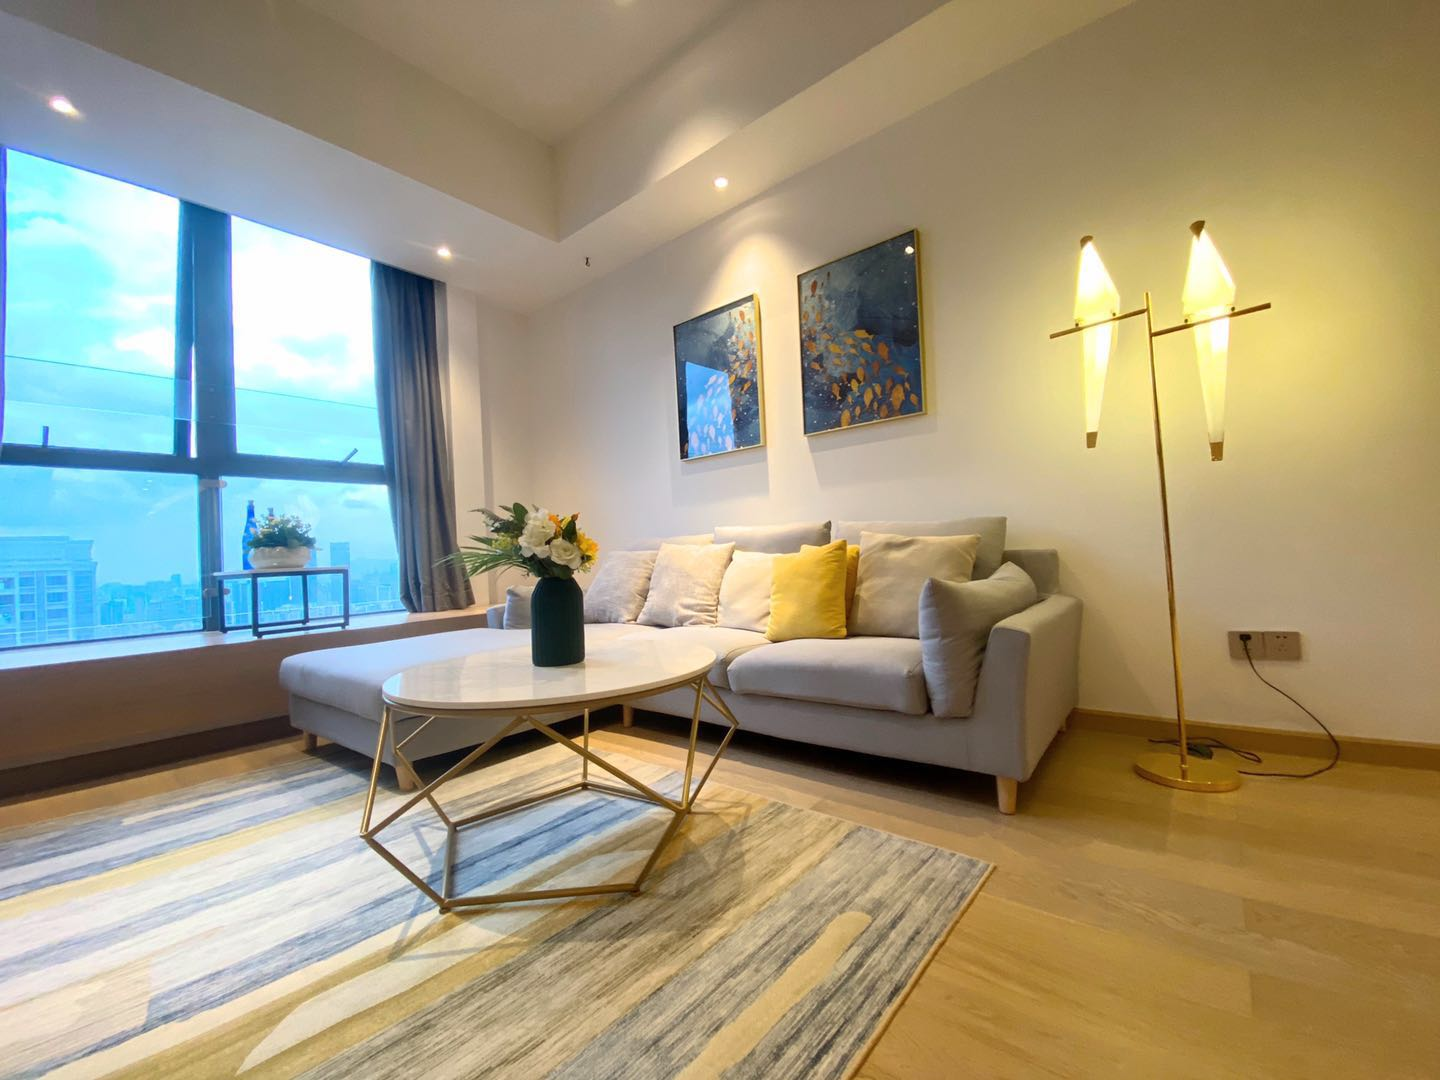 Luxurious 2 bedrooms 2 bathrooms apartment in shekou for rent